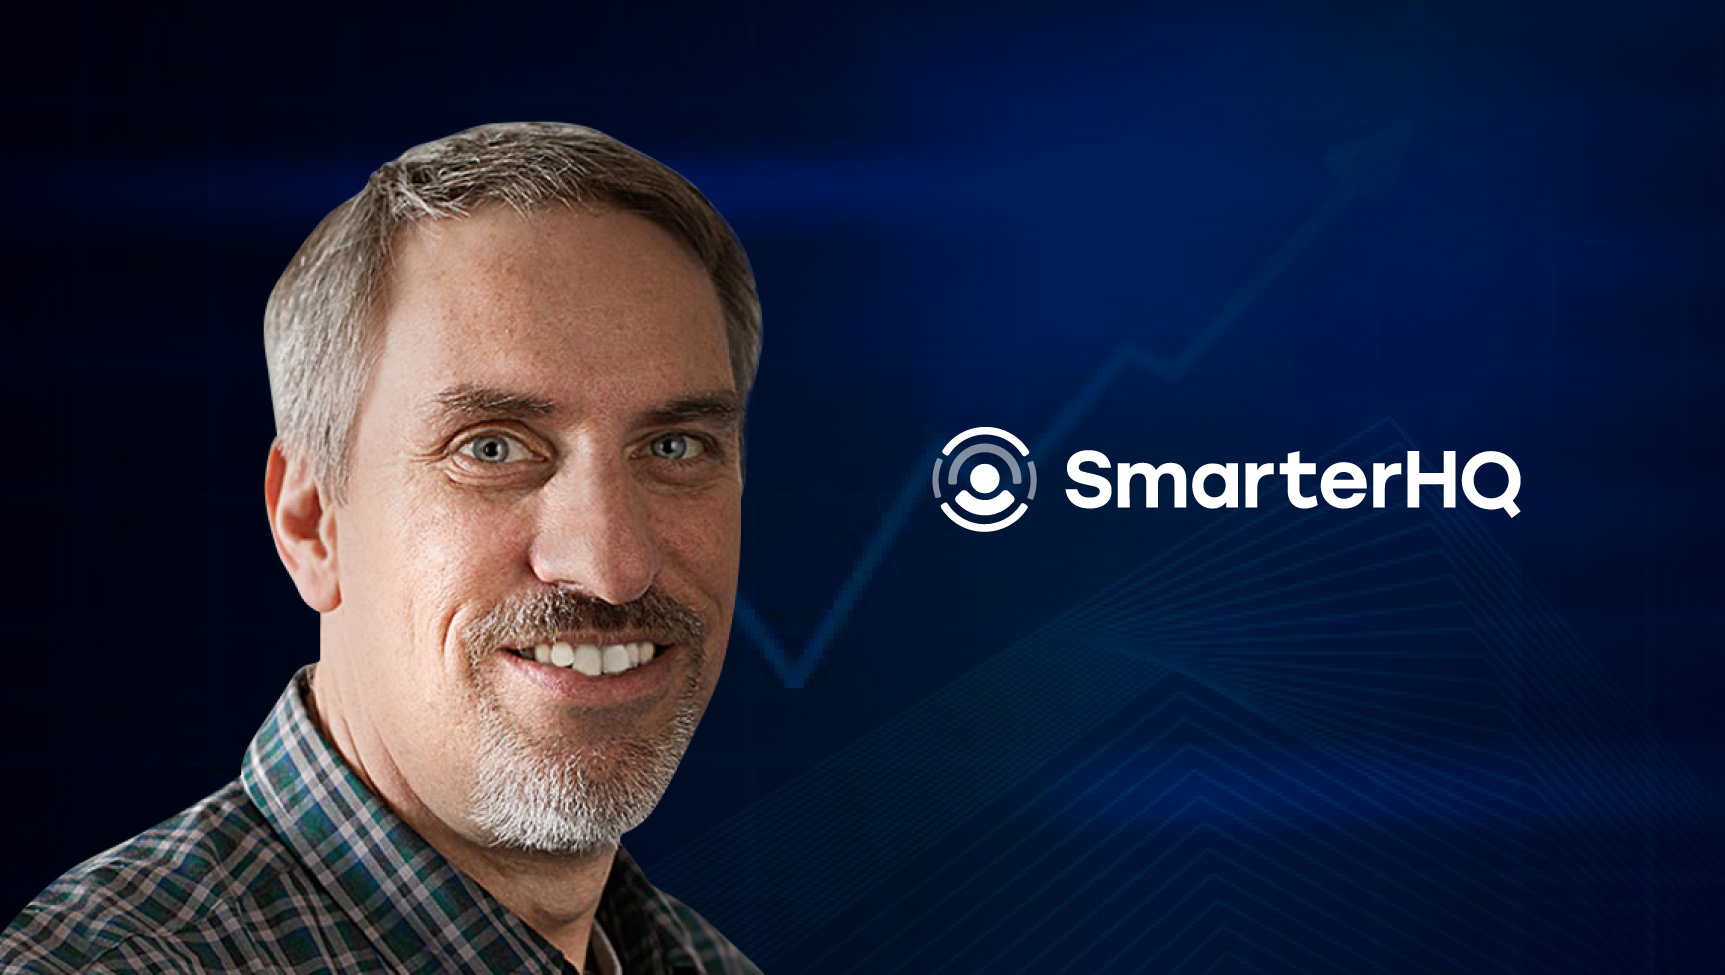 SalesTech Interview with Dean Abbott, Co-Founder and Chief Data Scientist at SmarterHQ